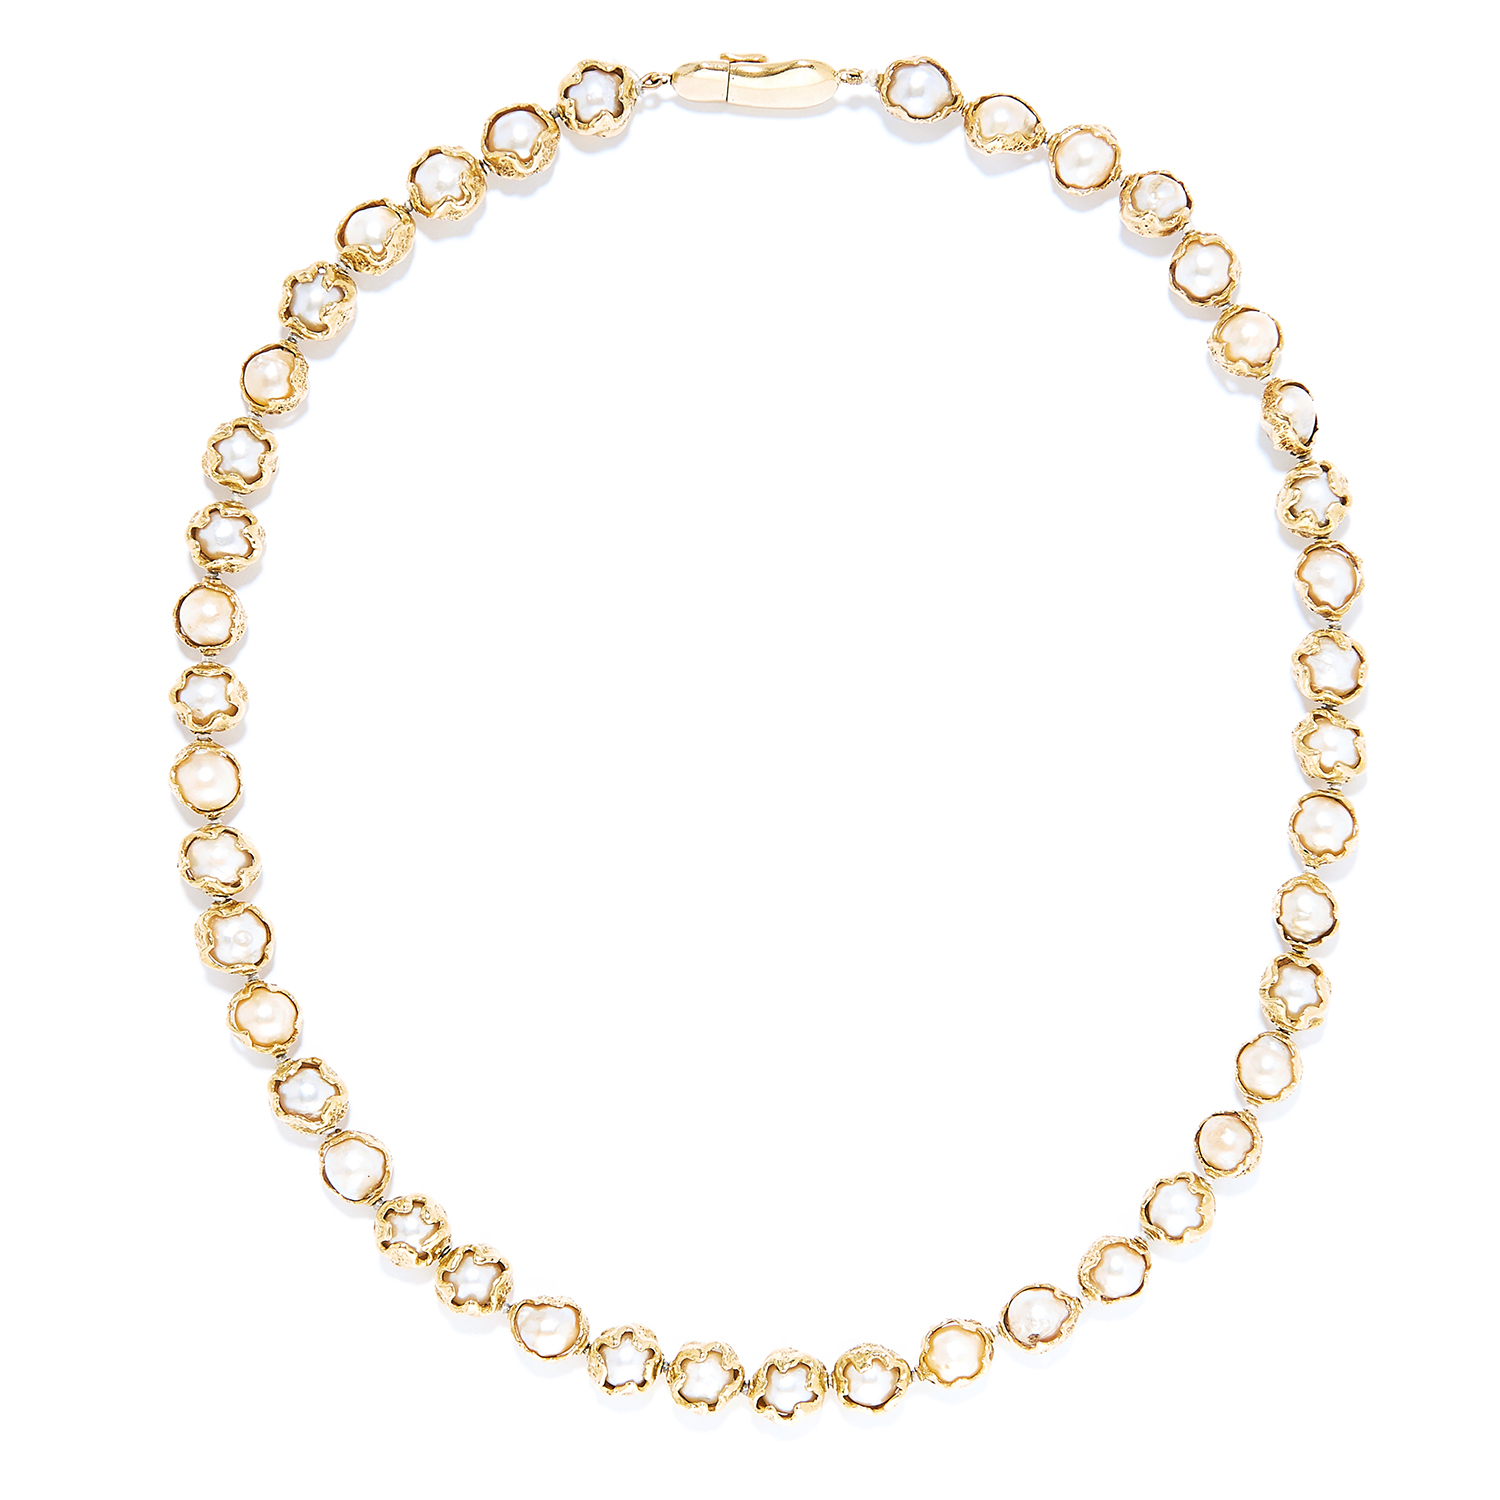 PEARL BEAD NECKLACE, CHARLES DE TEMPLE, 1957 in 18ct yellow gold, comprising of a single row of